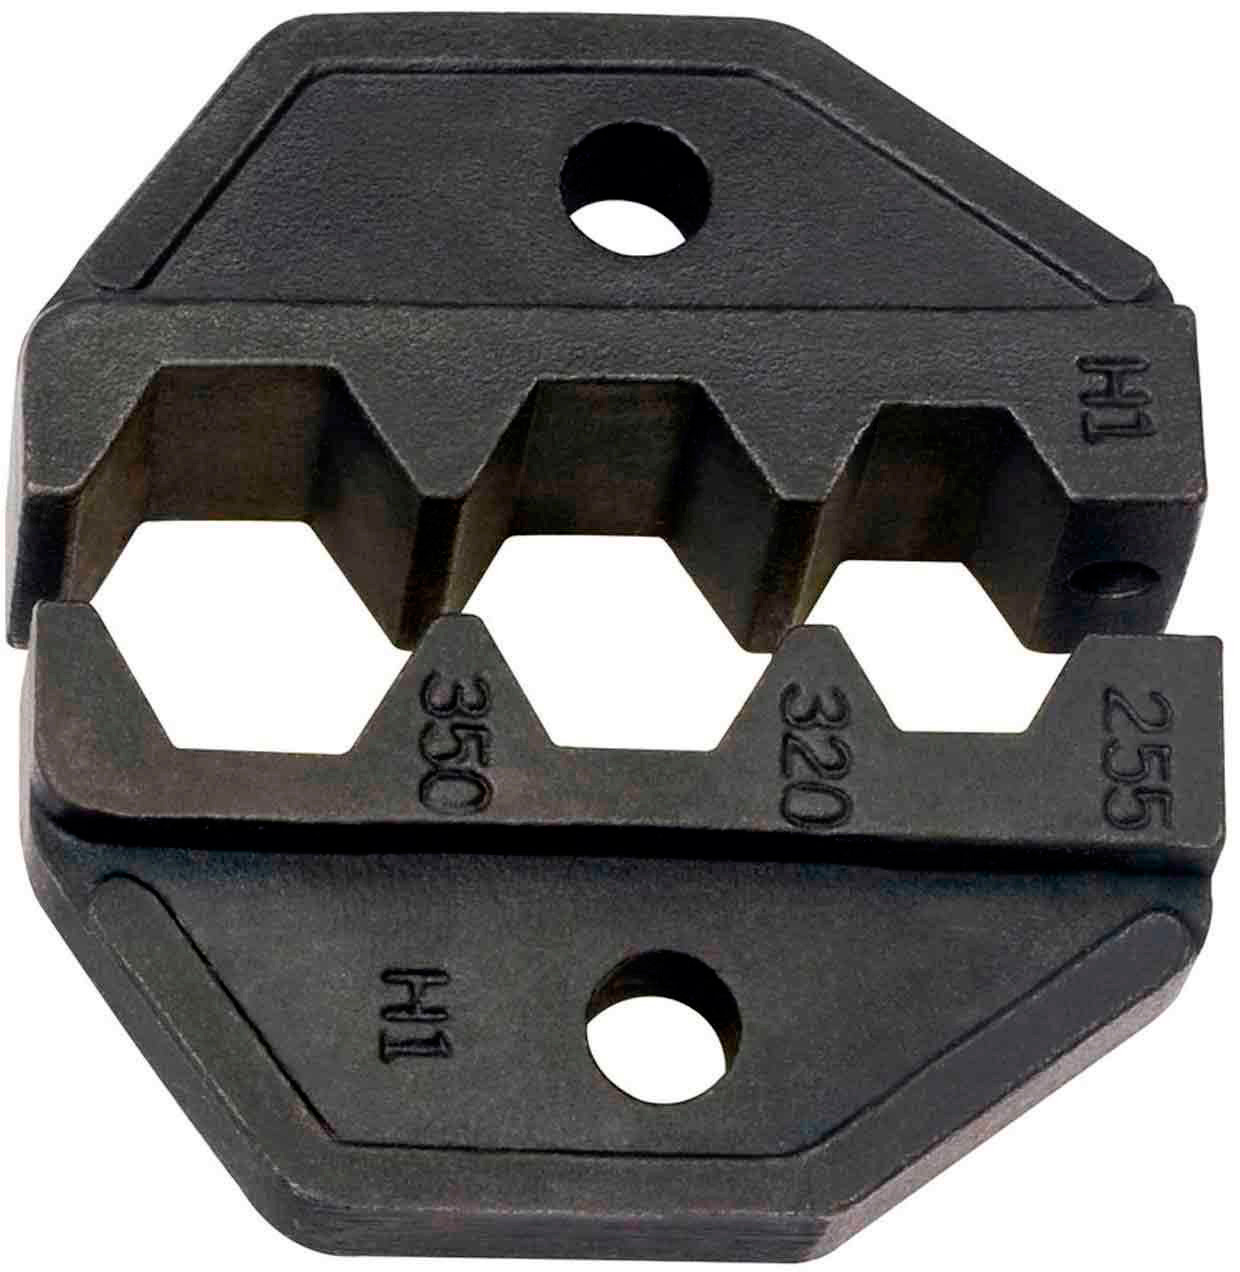 Klein Tools VDV212-034 Die Set for VDV200-010 VDV212-034